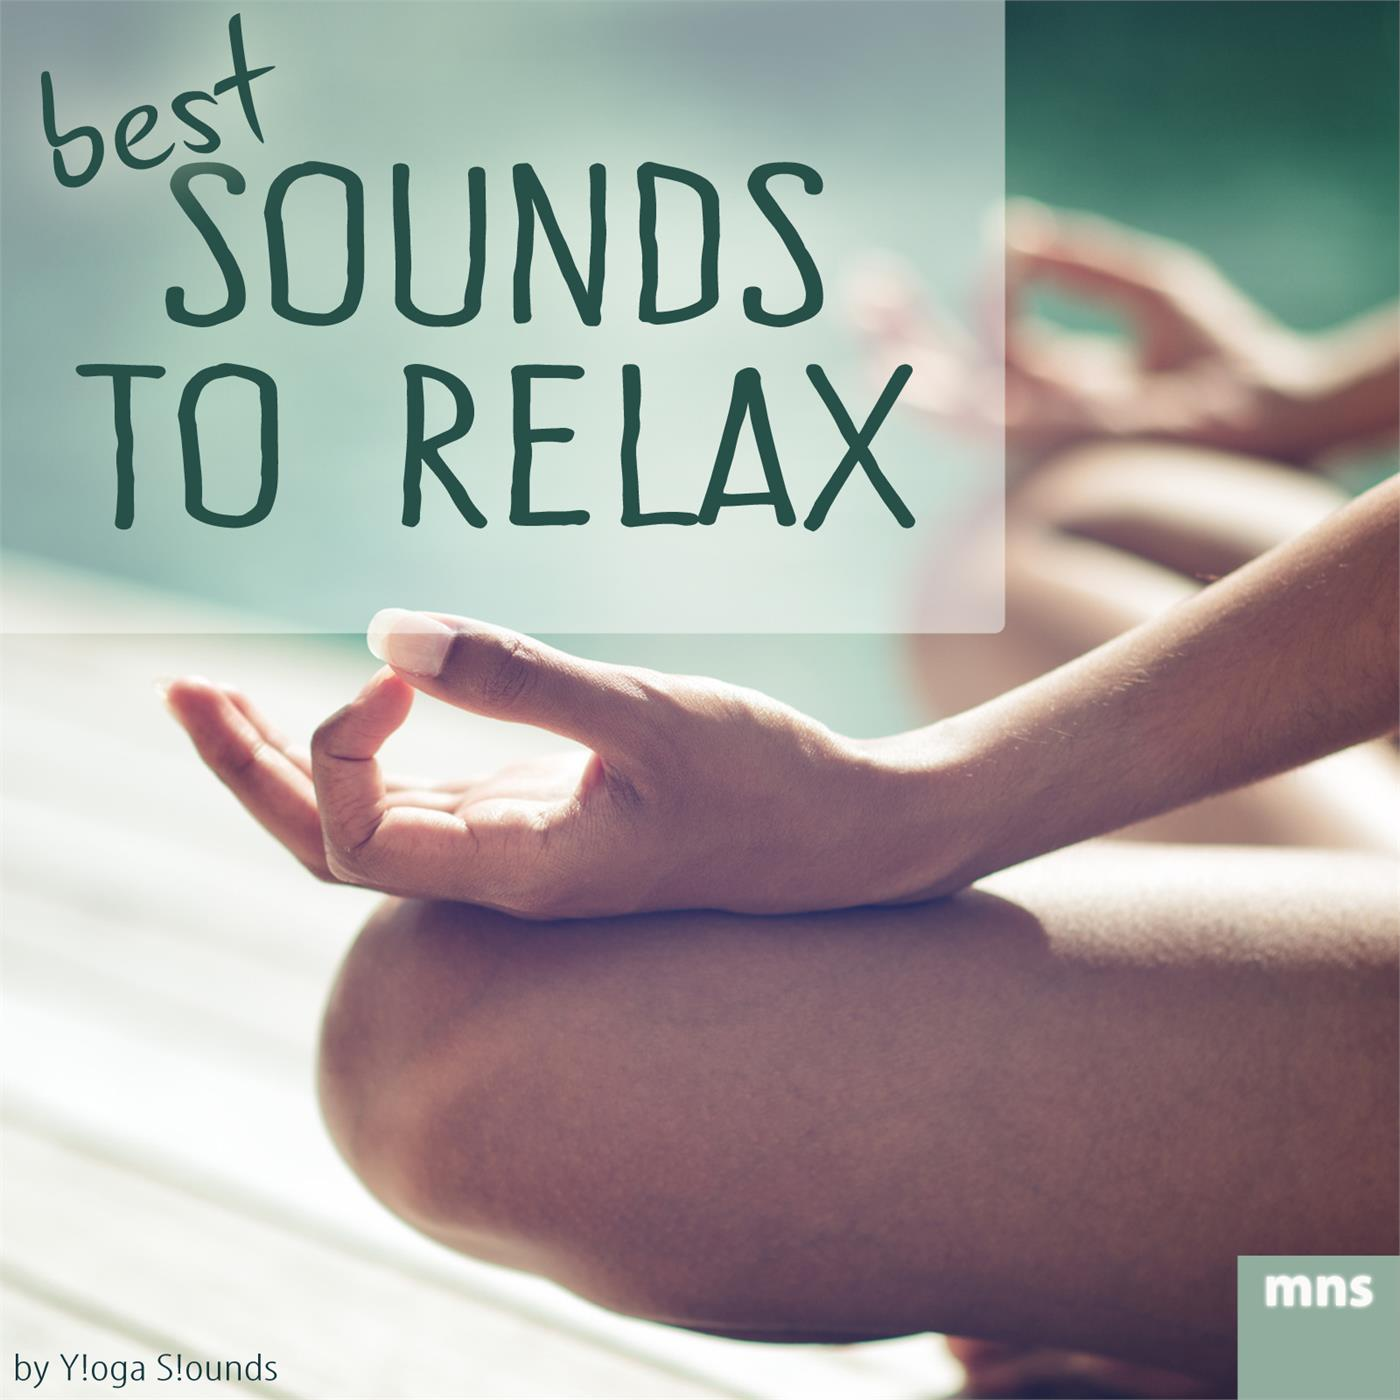 Best Sounds to Relax